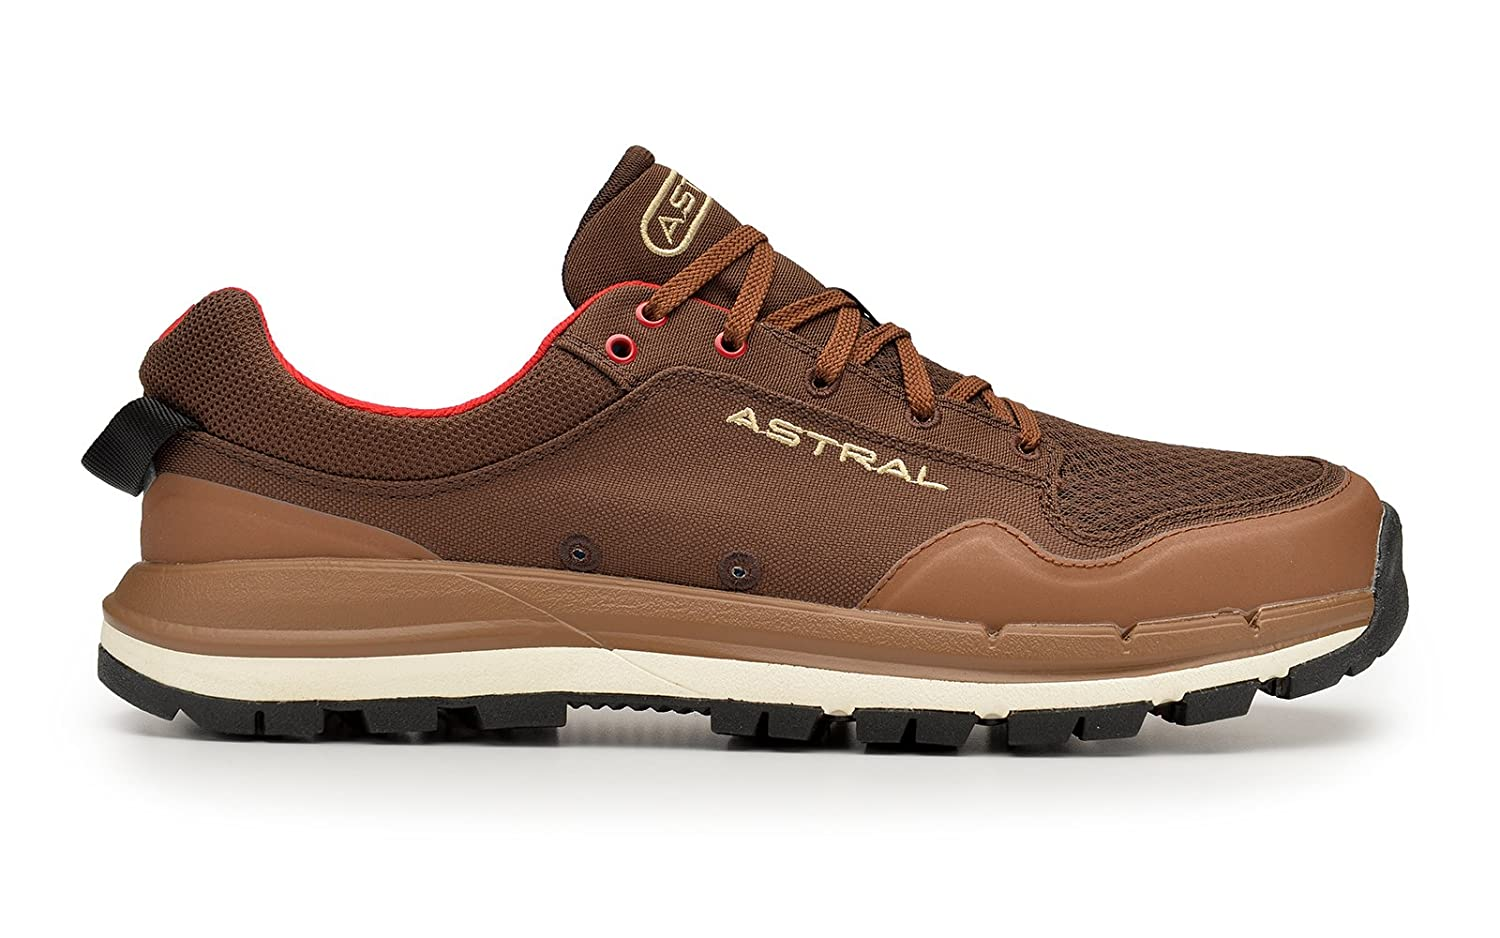 Astral TR1 Junction Men's Water Hiking Shoe B01LZNX13Y M11.5|Dirt Brown